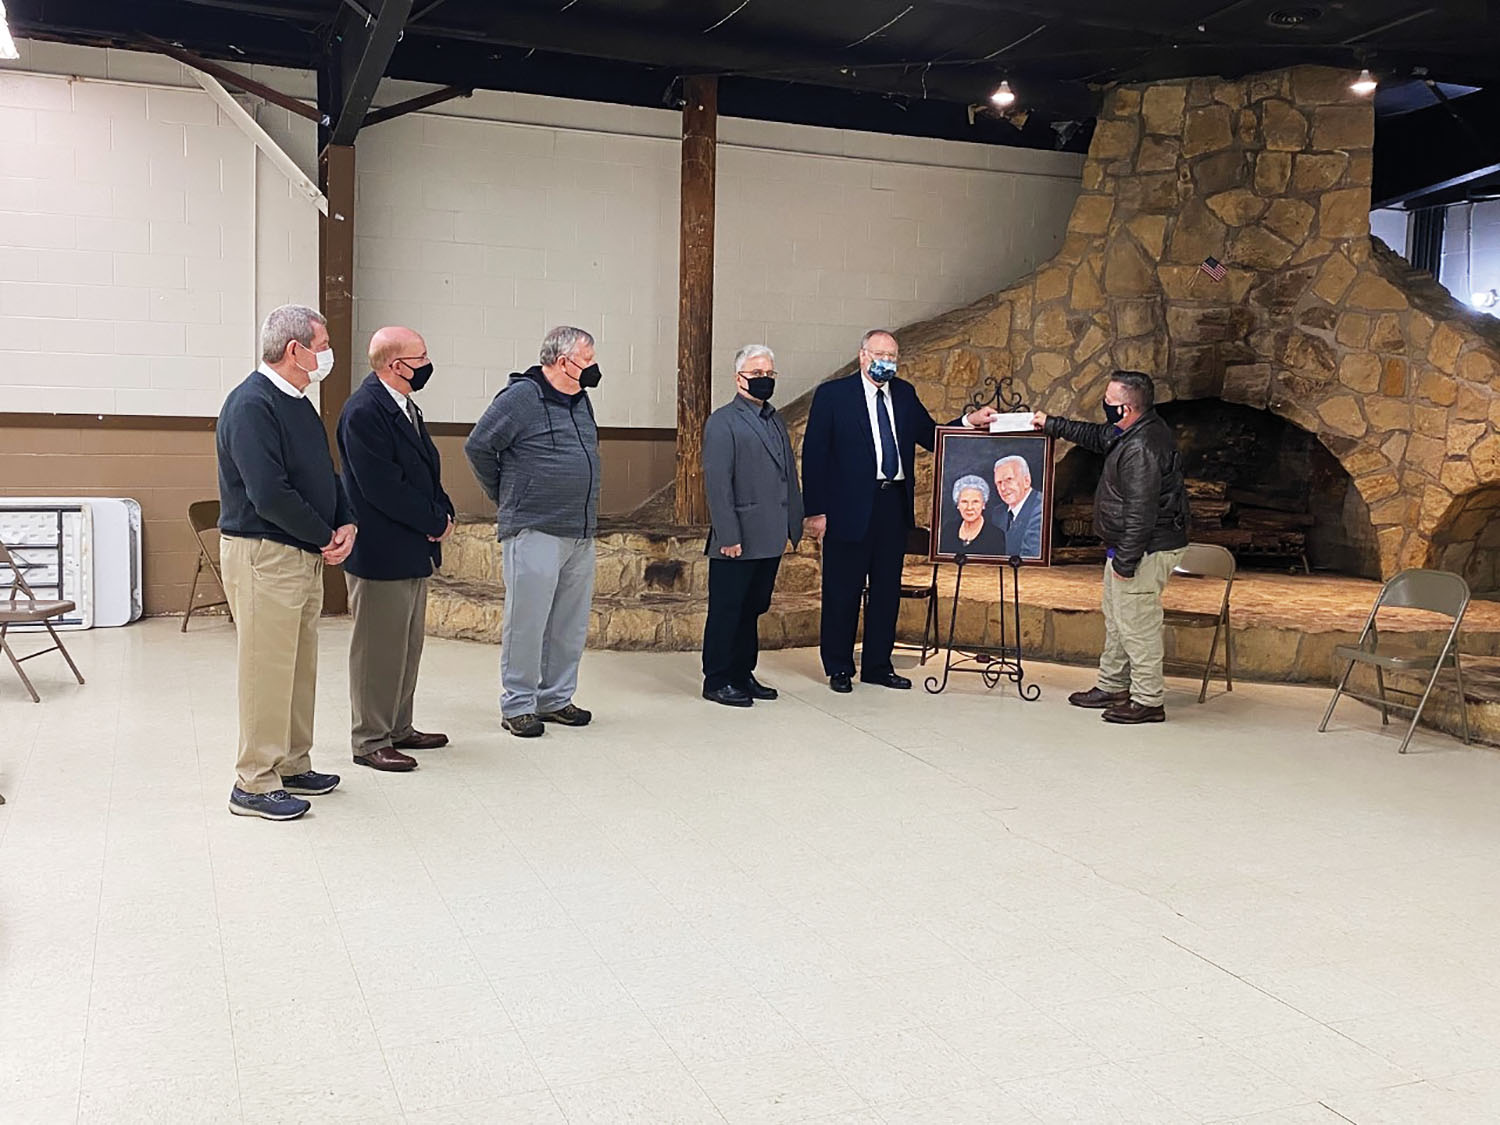 James McCormick, executive director of the Point Pleasant River Museum and Lakin Ray Clark Learning Center, receives a check from the Robert and Louis Claflin Foundation from Stephen Littlepage as Gary Field, Dennis Brumfield, Point Pleasant Mayor Brian Billings and John Sang look on. (photo courtesy of the Point Pleasant River Museum and Lakin Ray Clark Learning Center)